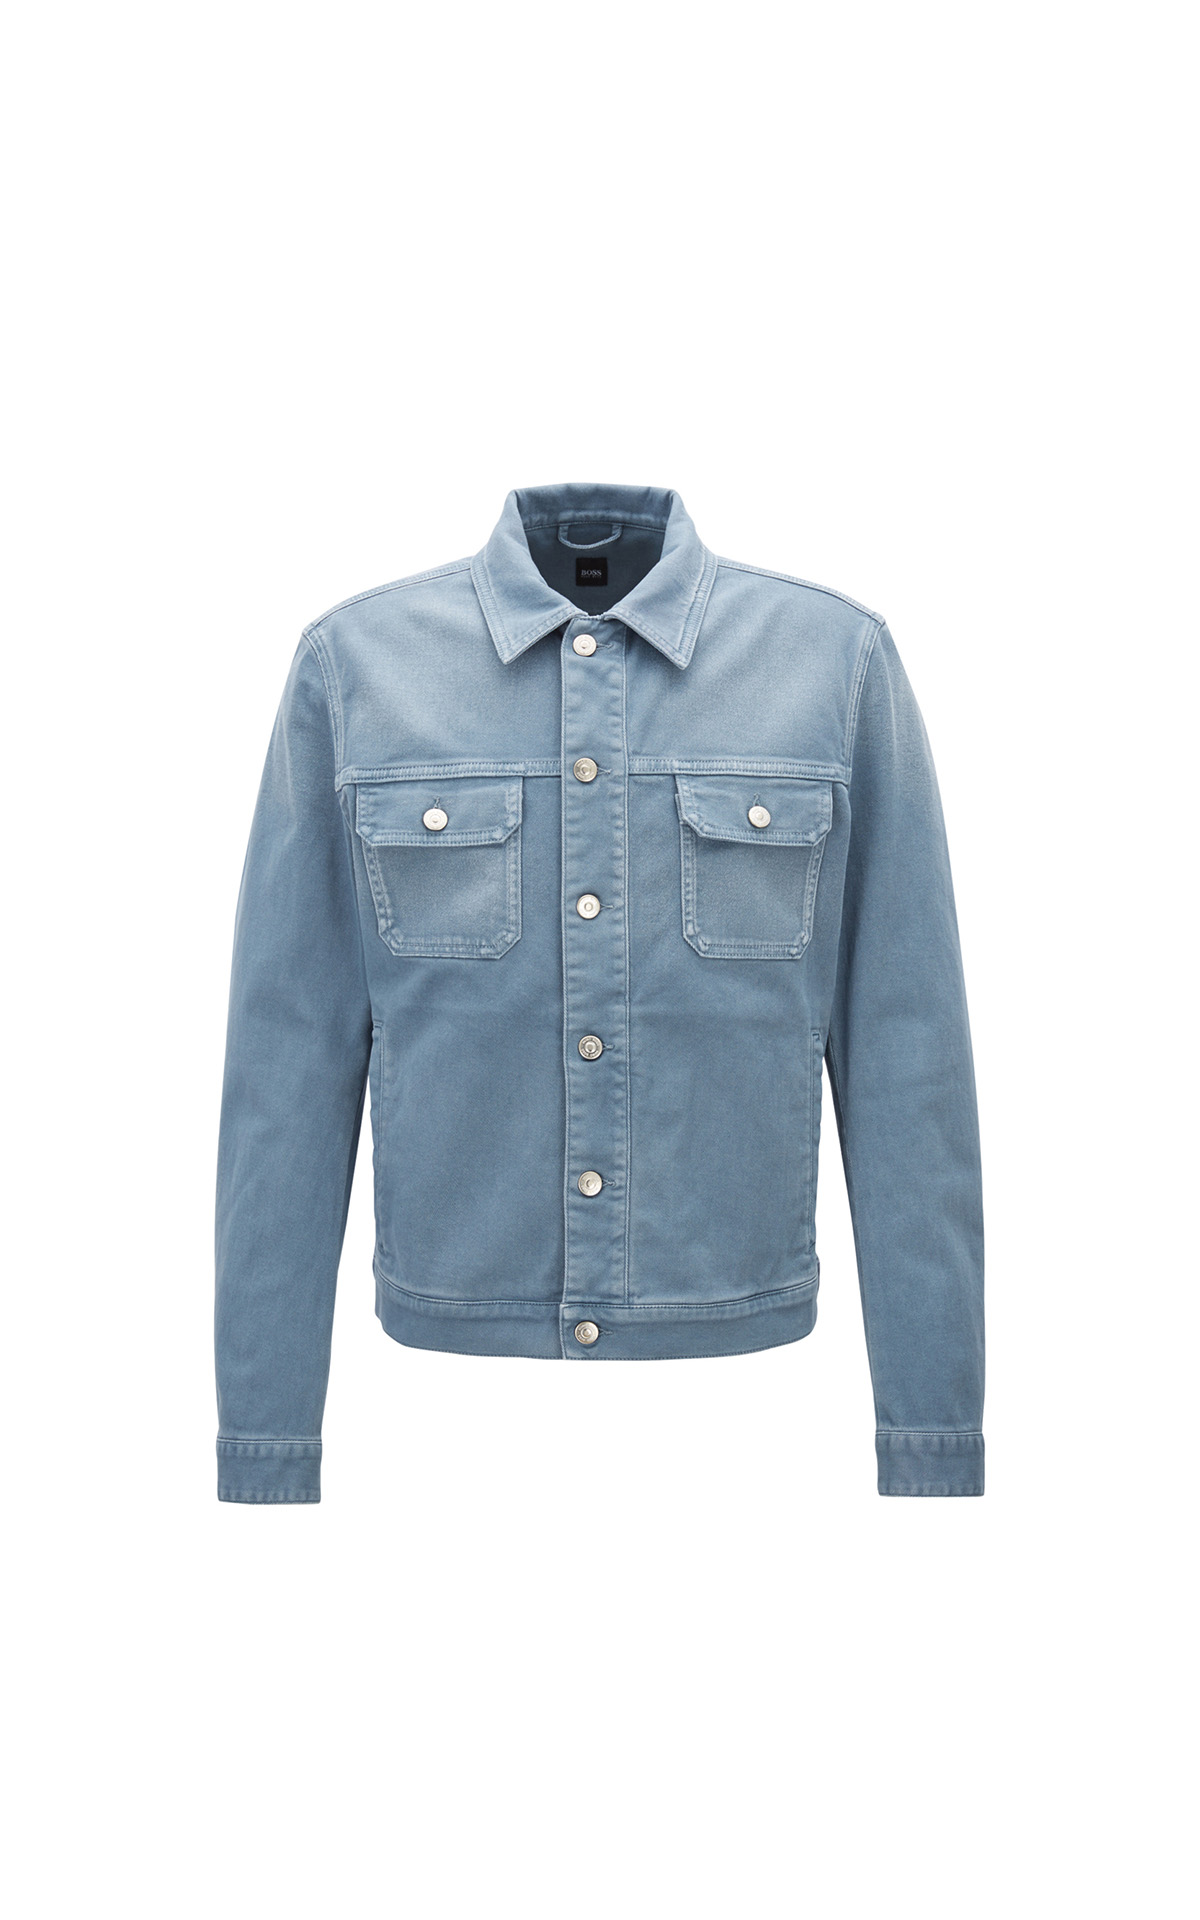 Boss Fitted Jacket in Coloured Stretch Denim at The Bicester Village Shopping Collection